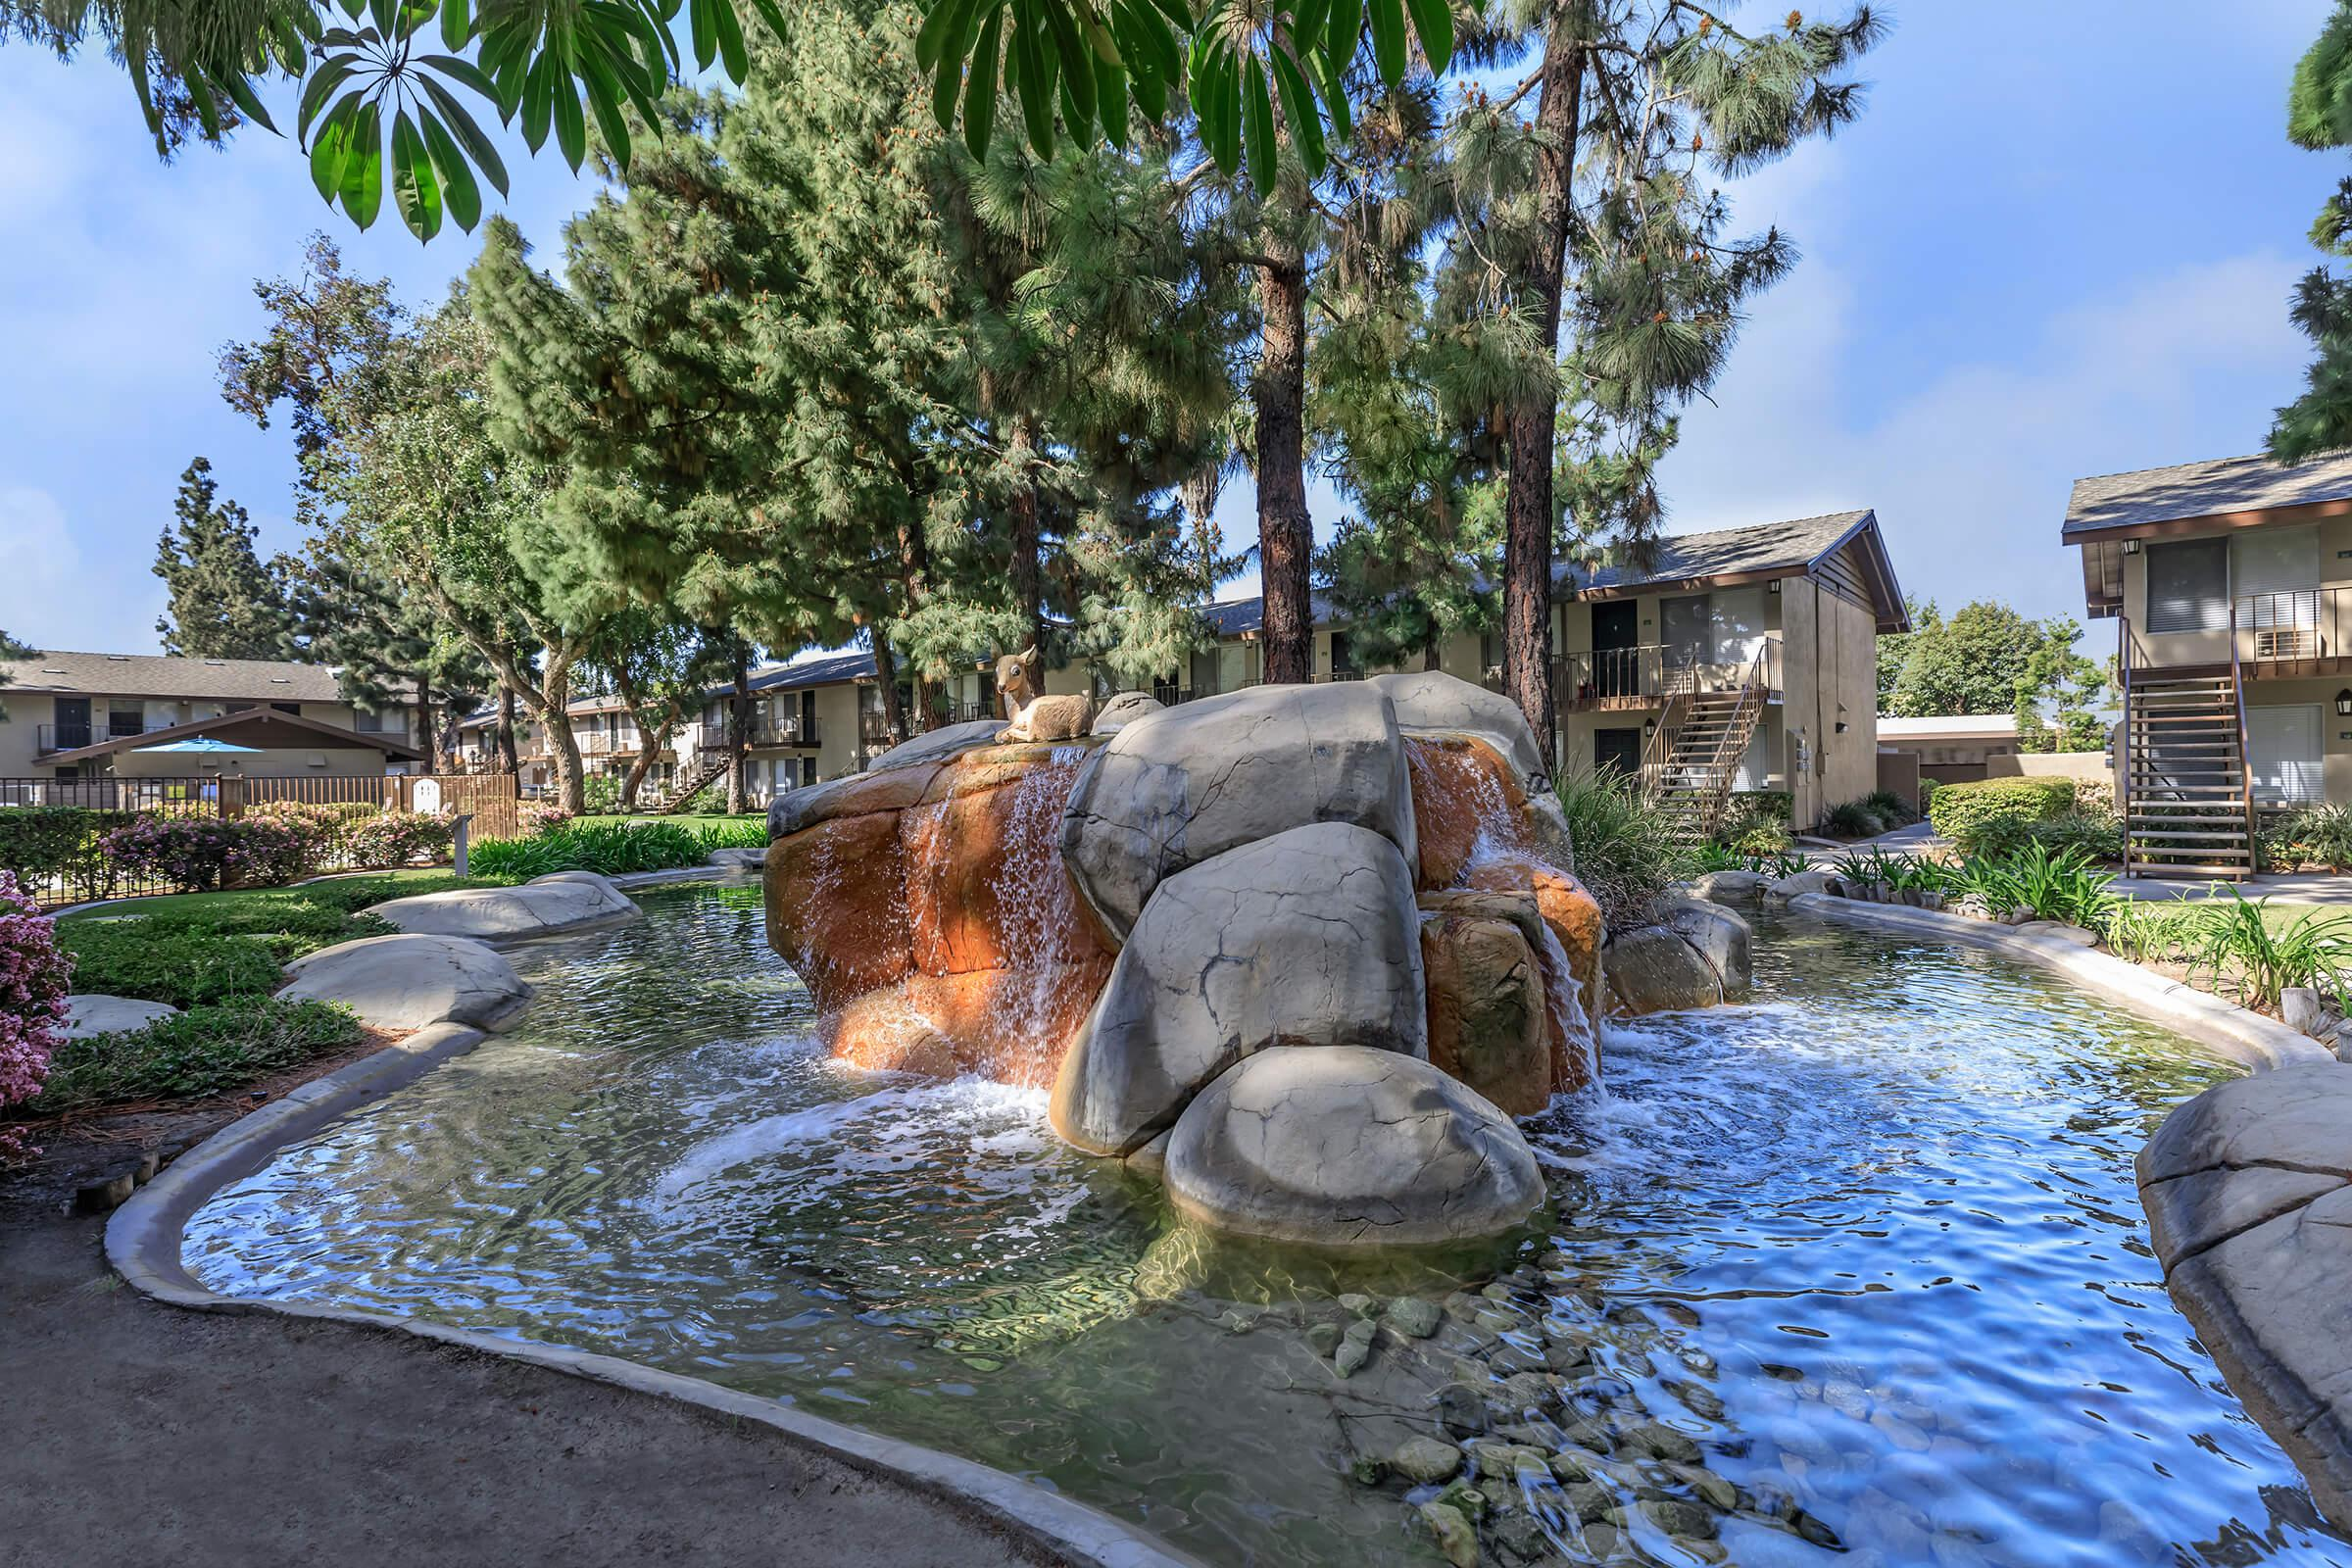 Water feature surrounded by community buildings